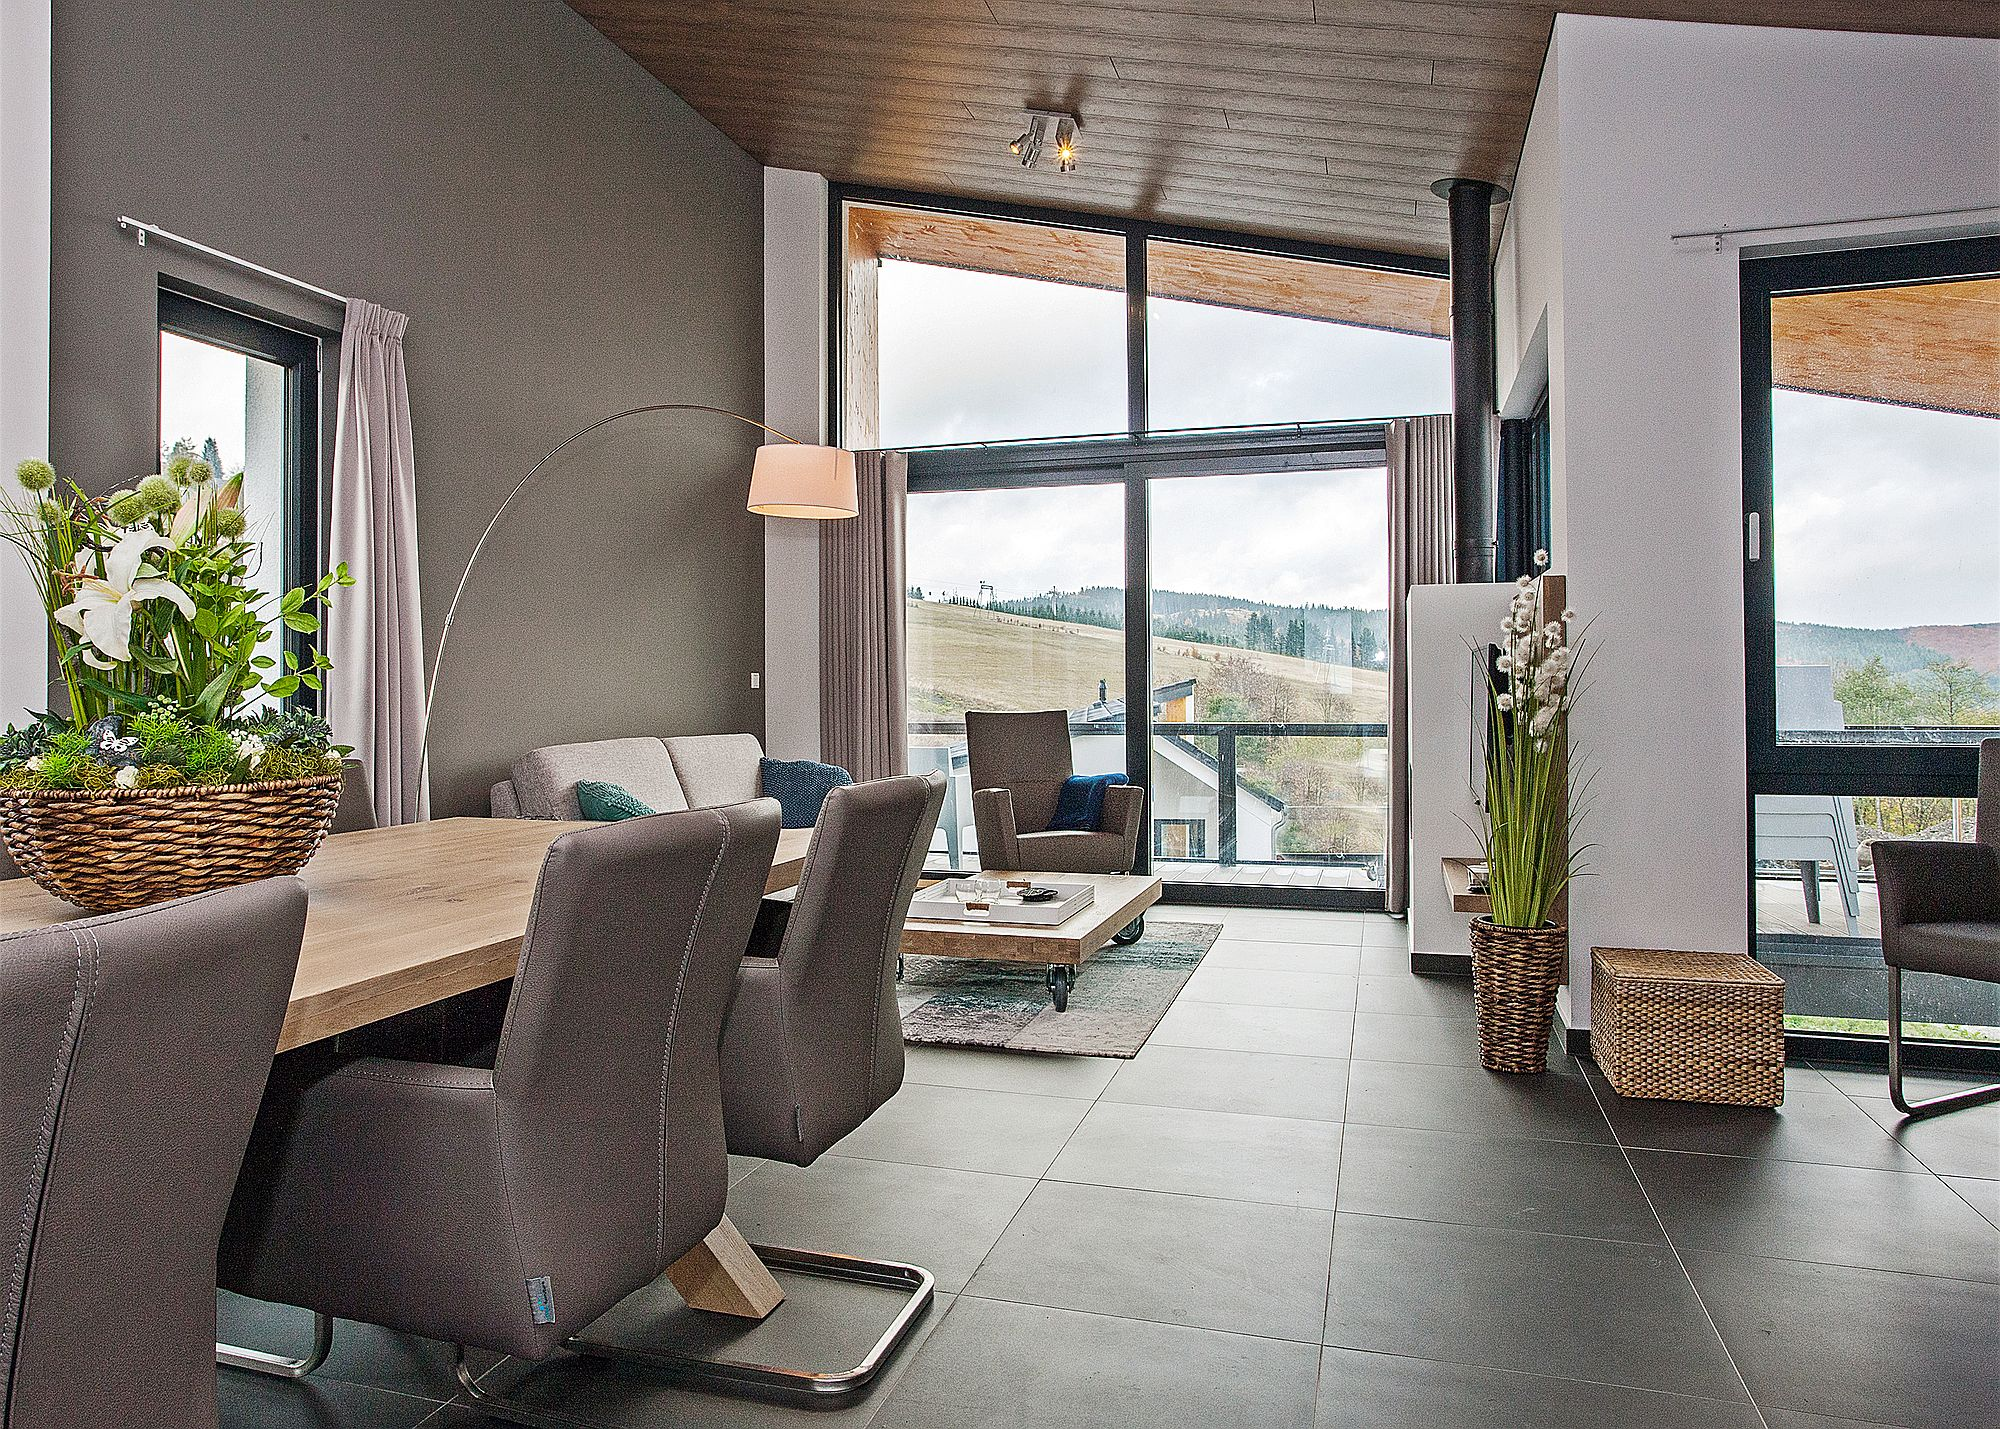 Sloped roof of the villa gives the interior a cool, modern look